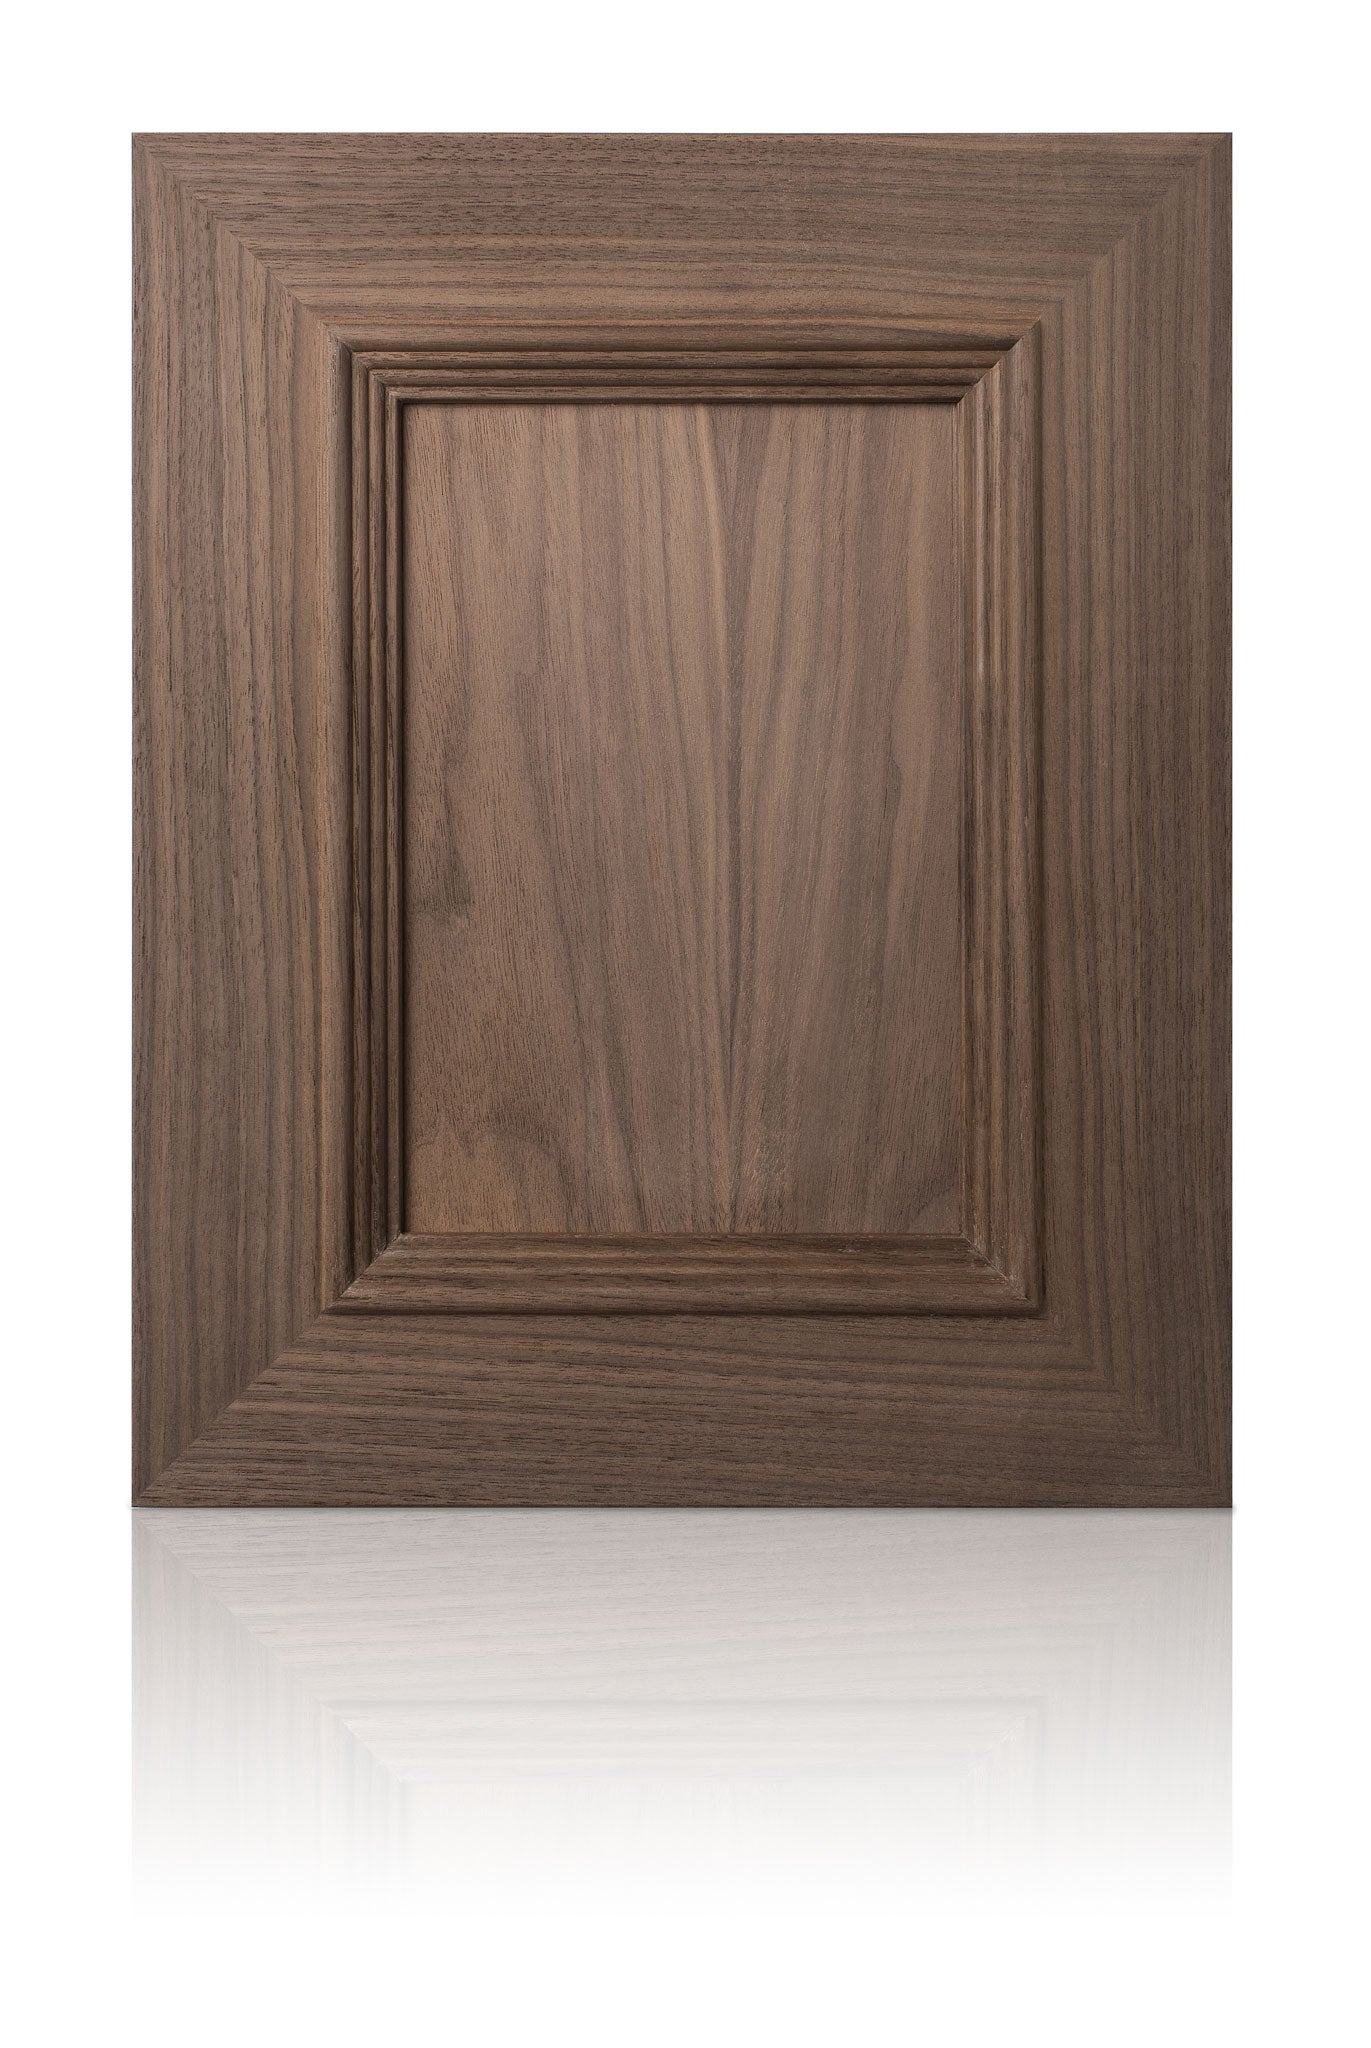 Surprising New Surrey Cabinet Doors Download Free Architecture Designs Scobabritishbridgeorg